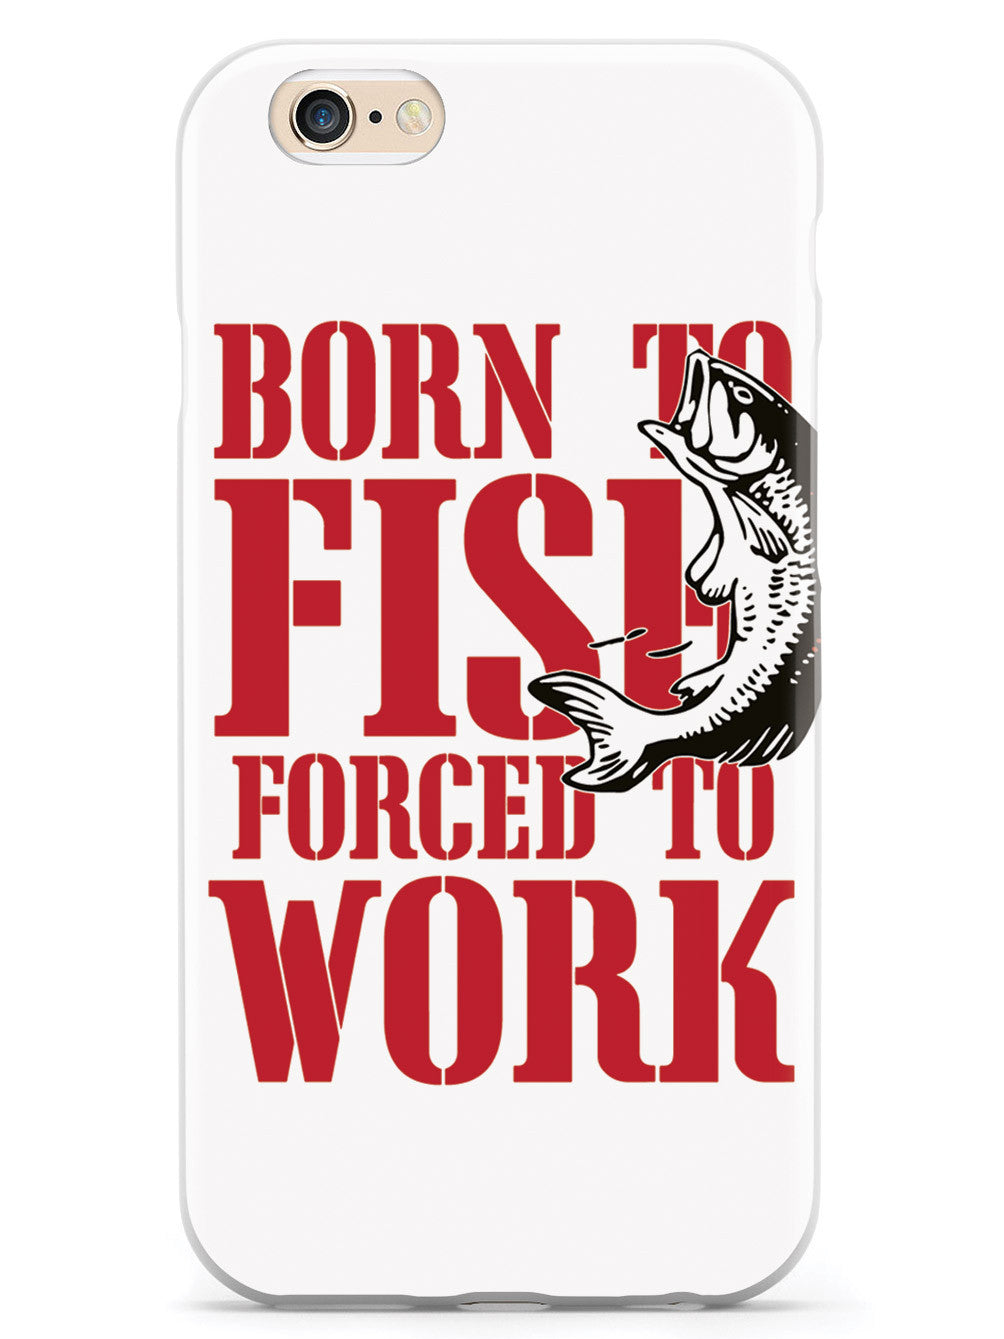 Born To Fish Forced To Work - White Case